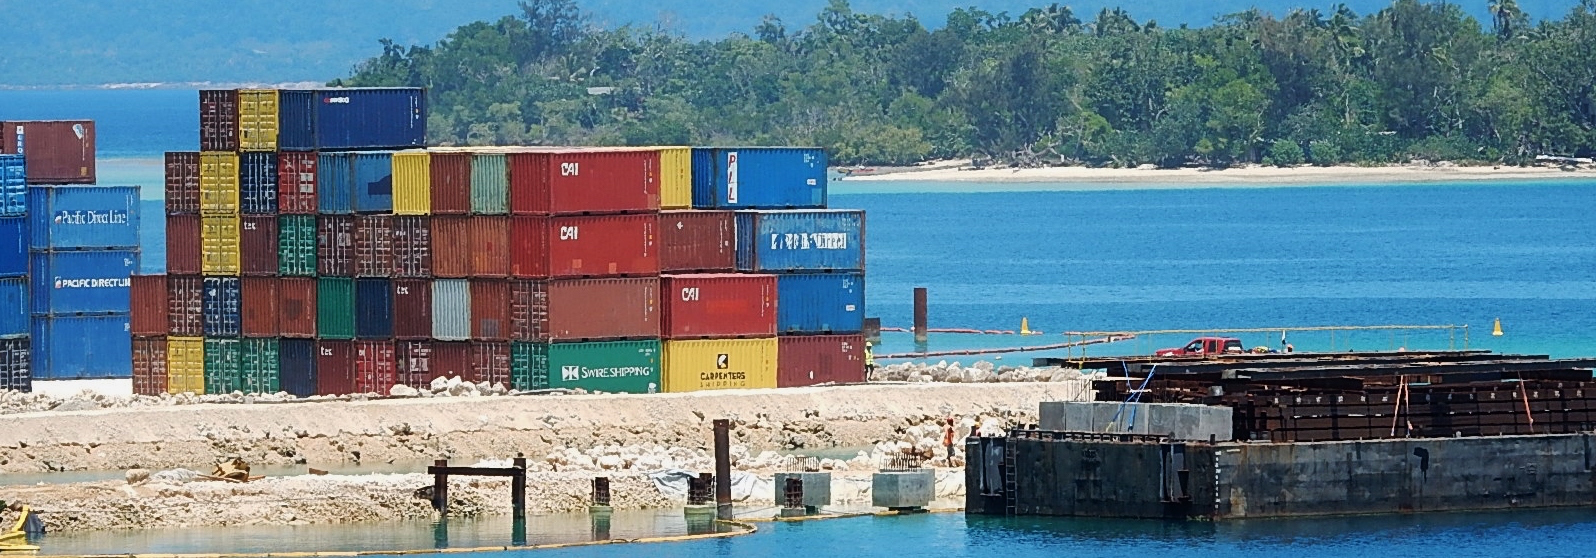 Containers in Port Villa (Photo: Michael Coghlan/Flickr)